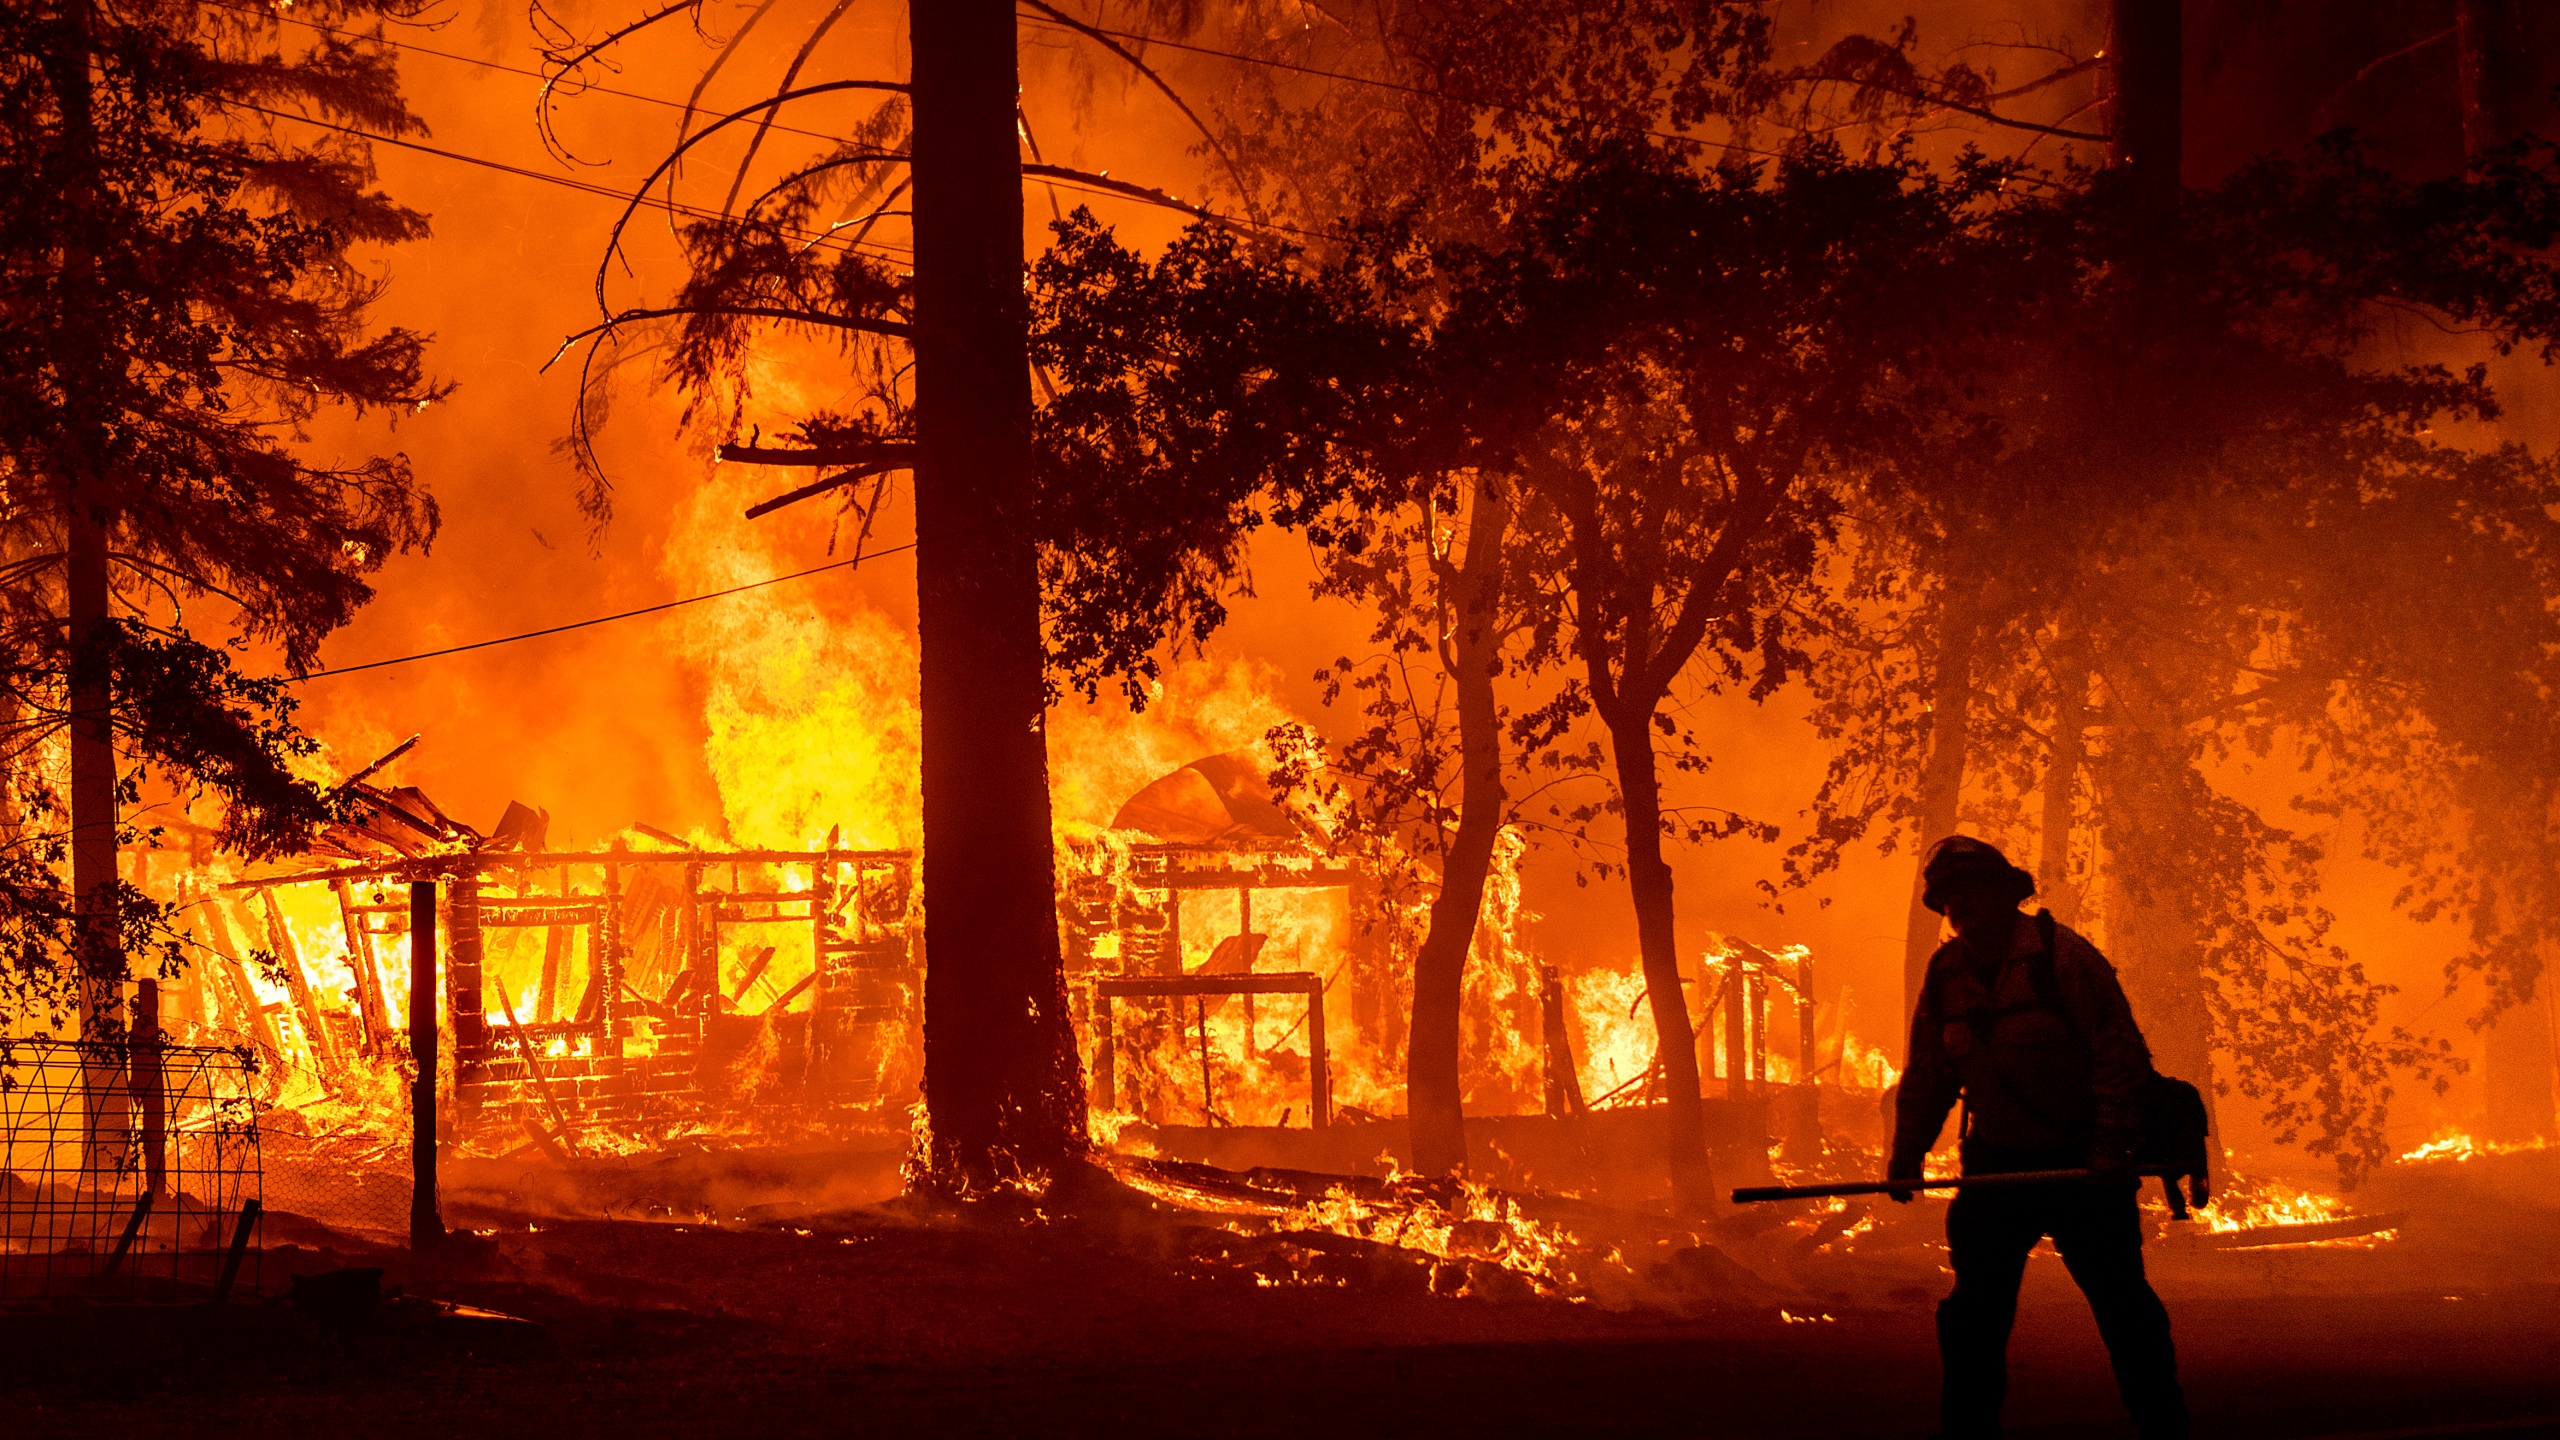 In this Saturday, July 24, 2021, file photo a firefighter passes a burning home as the Dixie Fire flares in Plumas County, Calif. The fire destroyed multiple residences as it tore through the Indian Falls community. Erratic winds and the potential for dry lightning added to the challenges facing firefighters battling California's largest wildfire, one of numerous blazes burning Monday across the U.S. West. (AP Photo/Noah Berge,File)